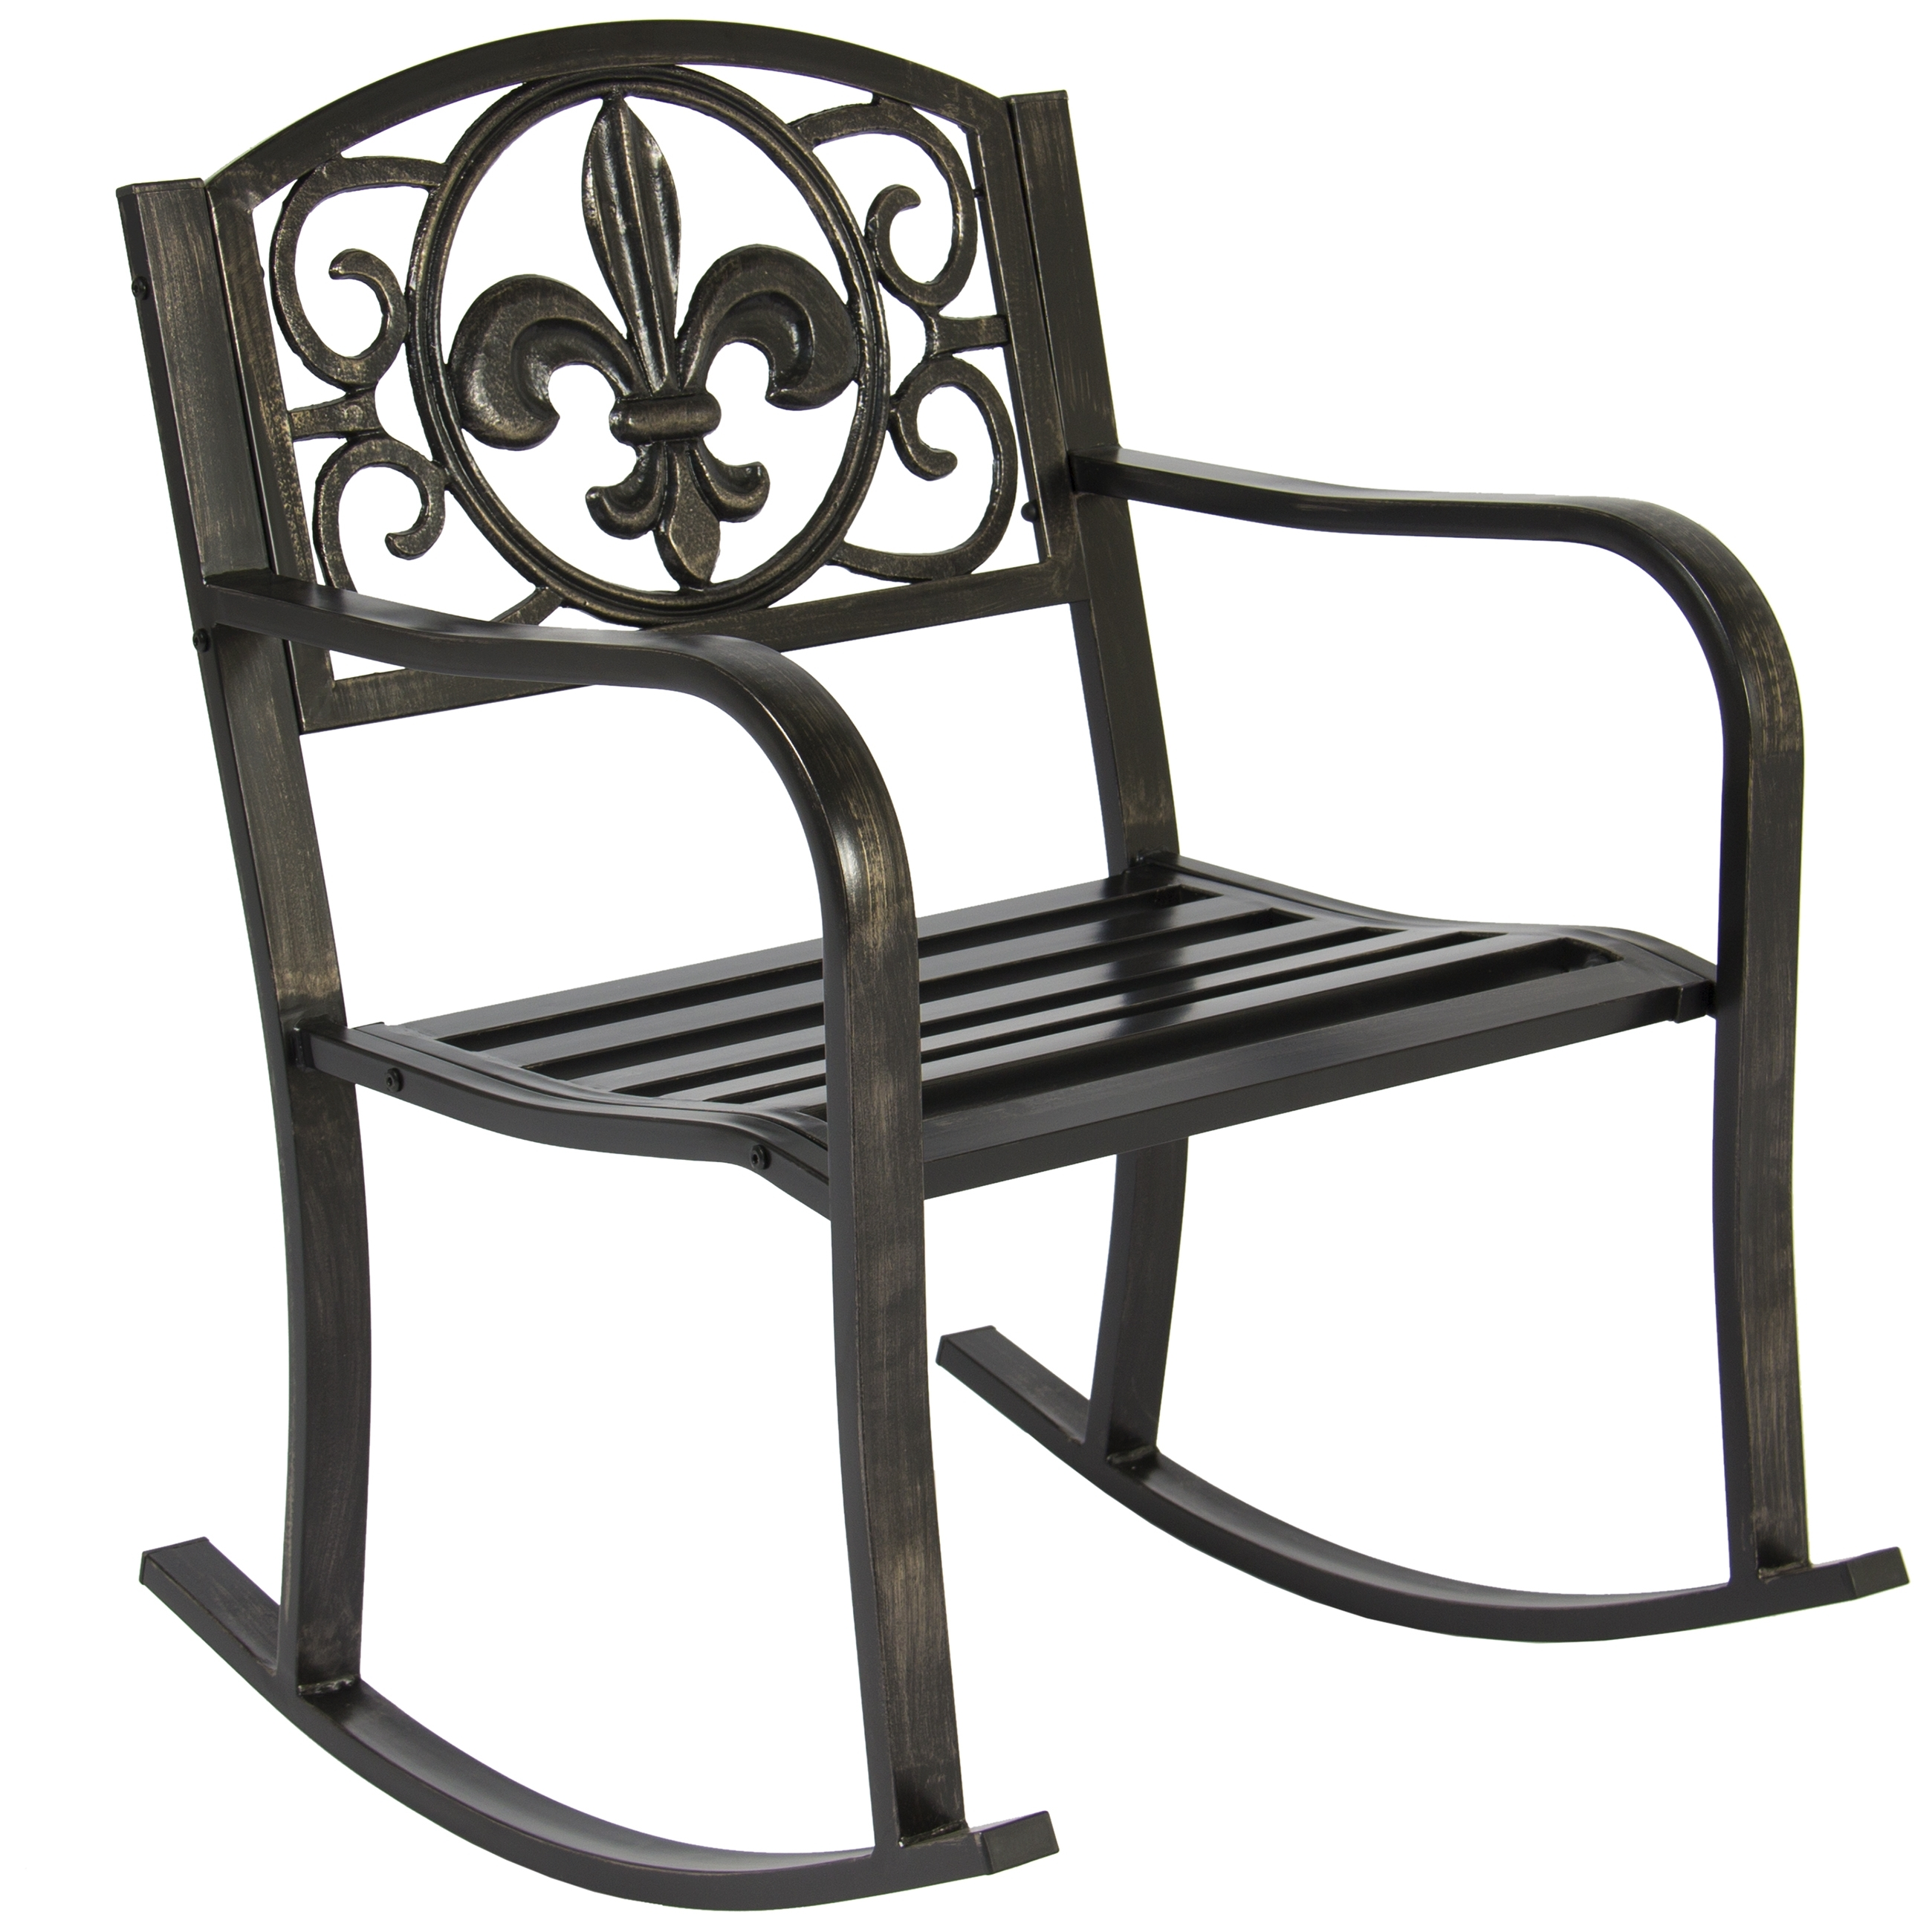 Best Choice Products Metal Rocking Chair Seat For Patio, Porch, Deck Regarding Outdoor Patio Metal Rocking Chairs (View 2 of 15)